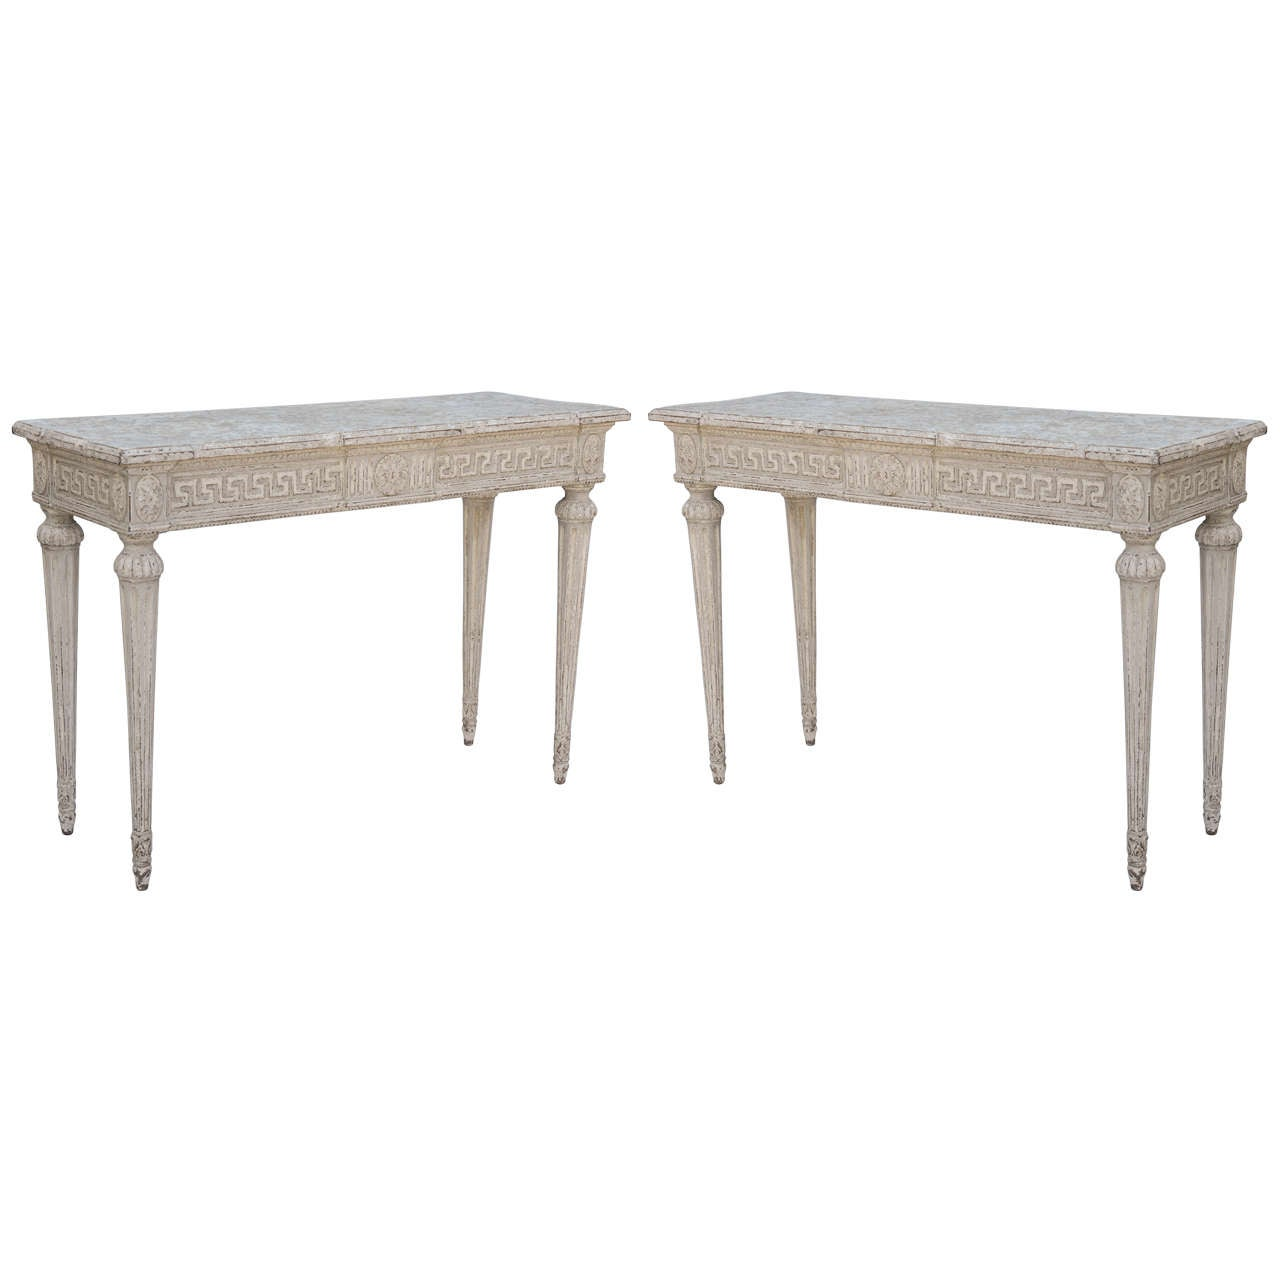 French Console Table pair of painted 19th century french console tables with greek key